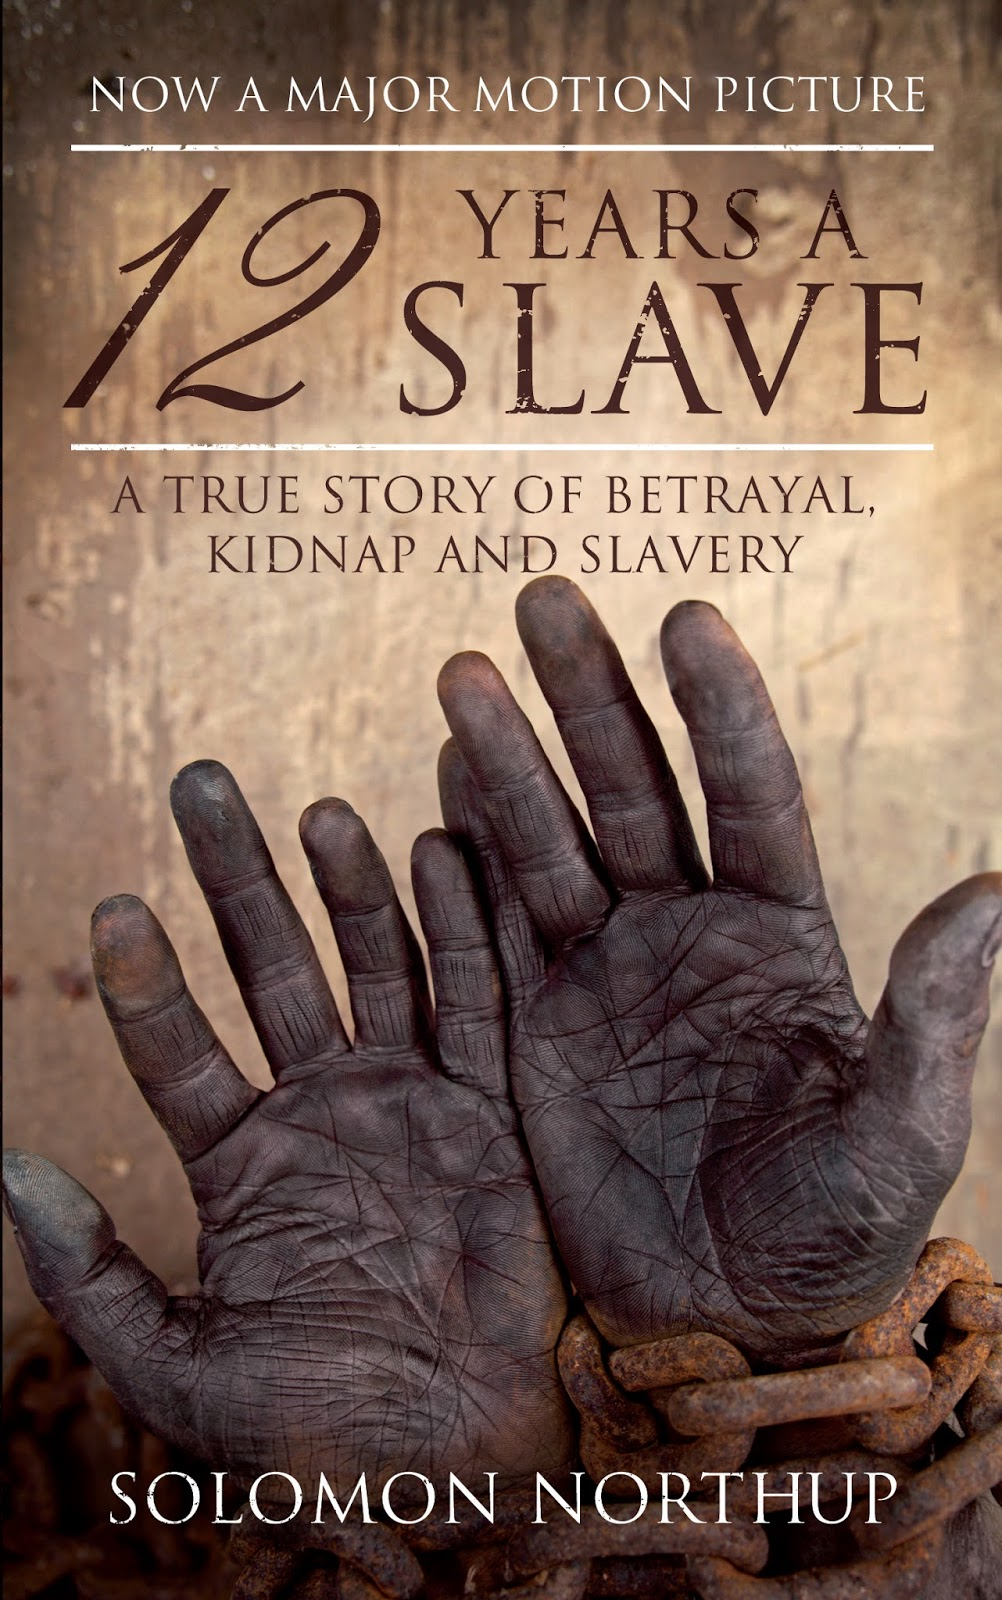 2 Years a Slave is a 2013